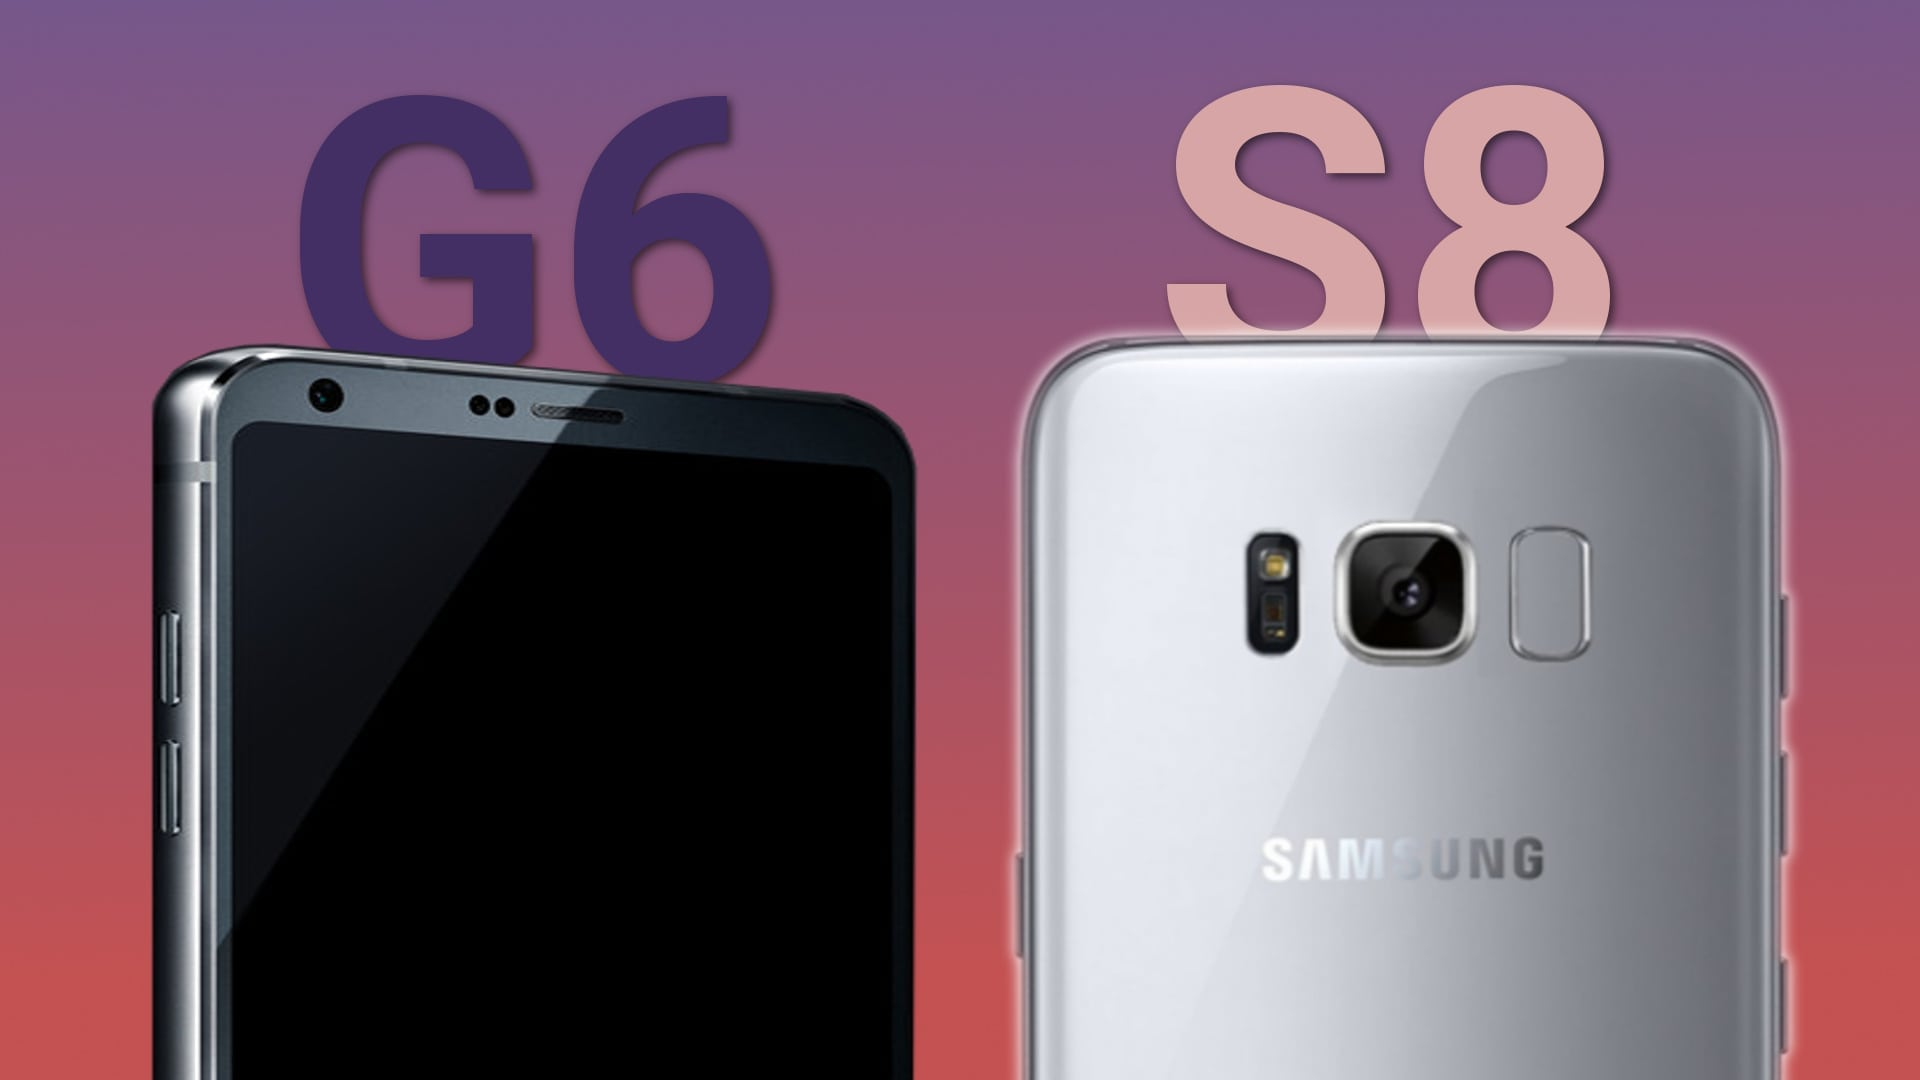 samsung galaxy s8 vs lg g6 which one should you buy